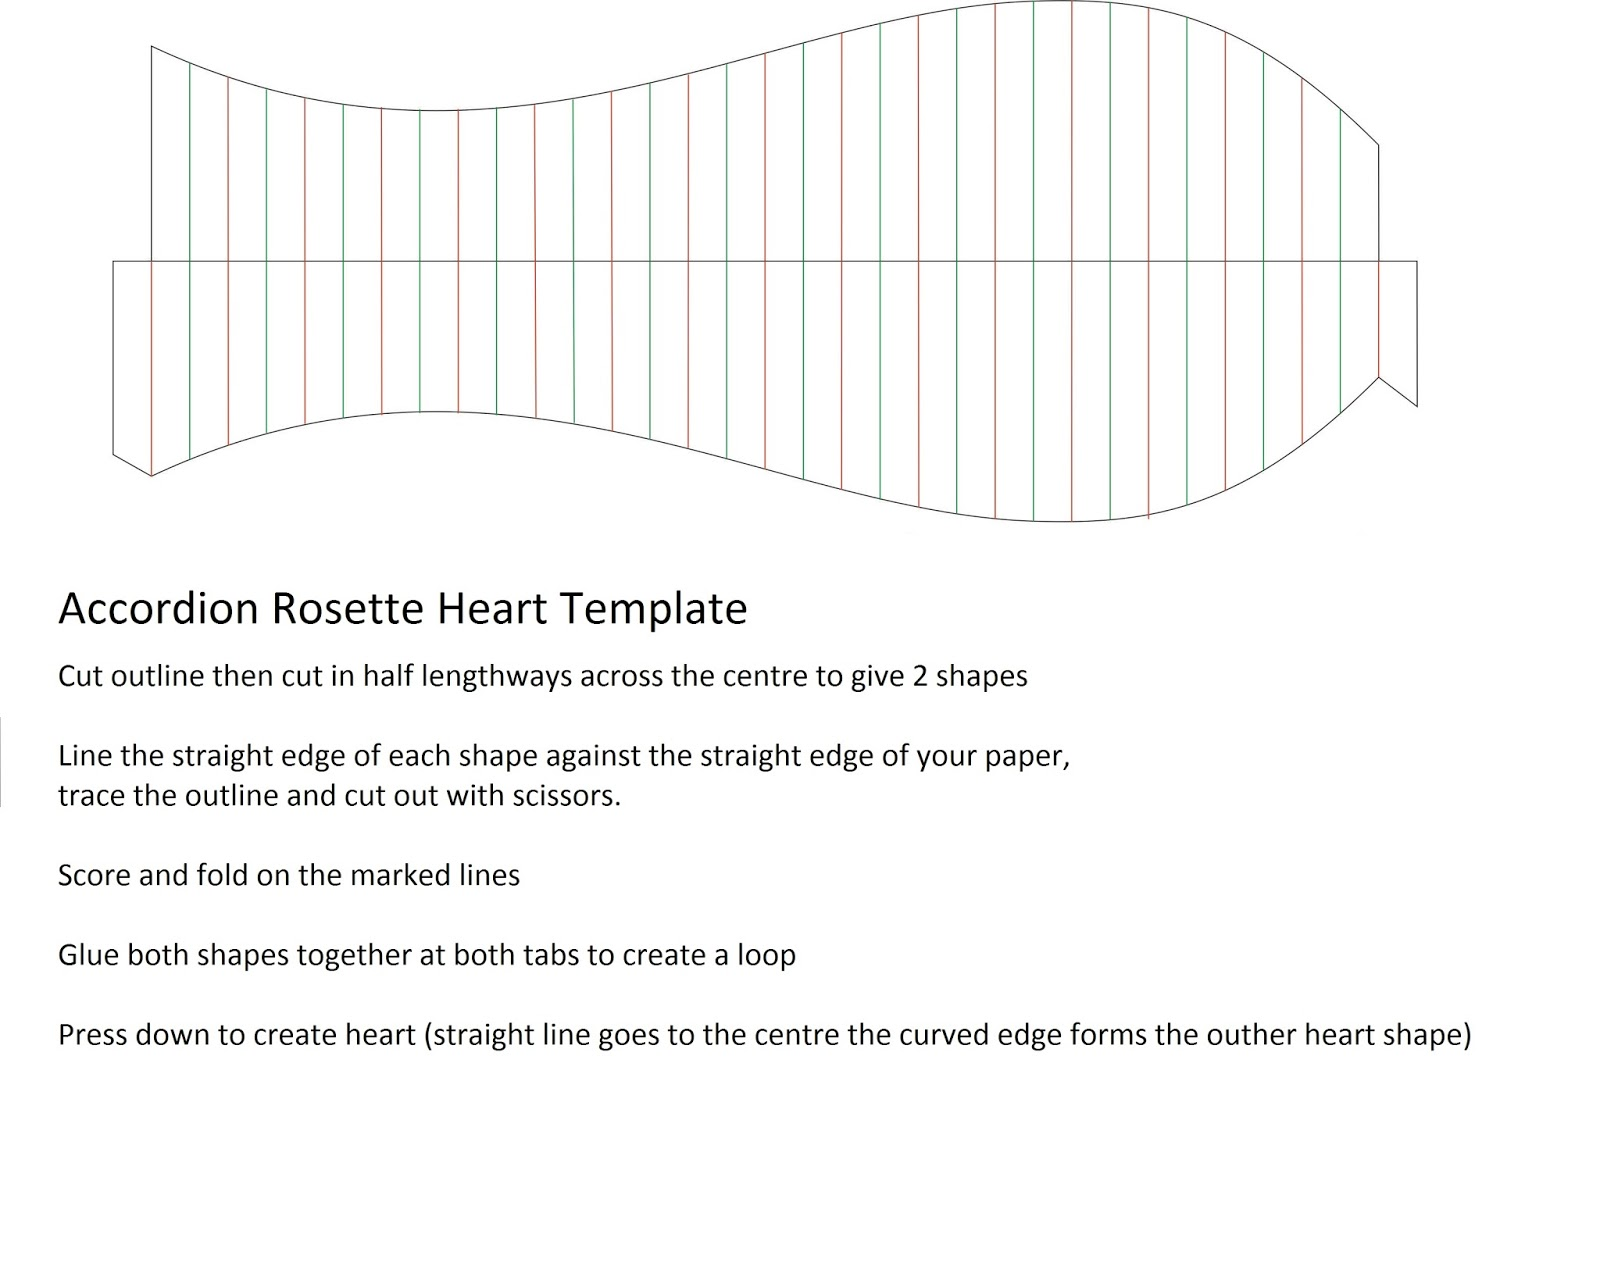 Heart Rosette Template Printable Gtgtgt Best Wallpaper Hd